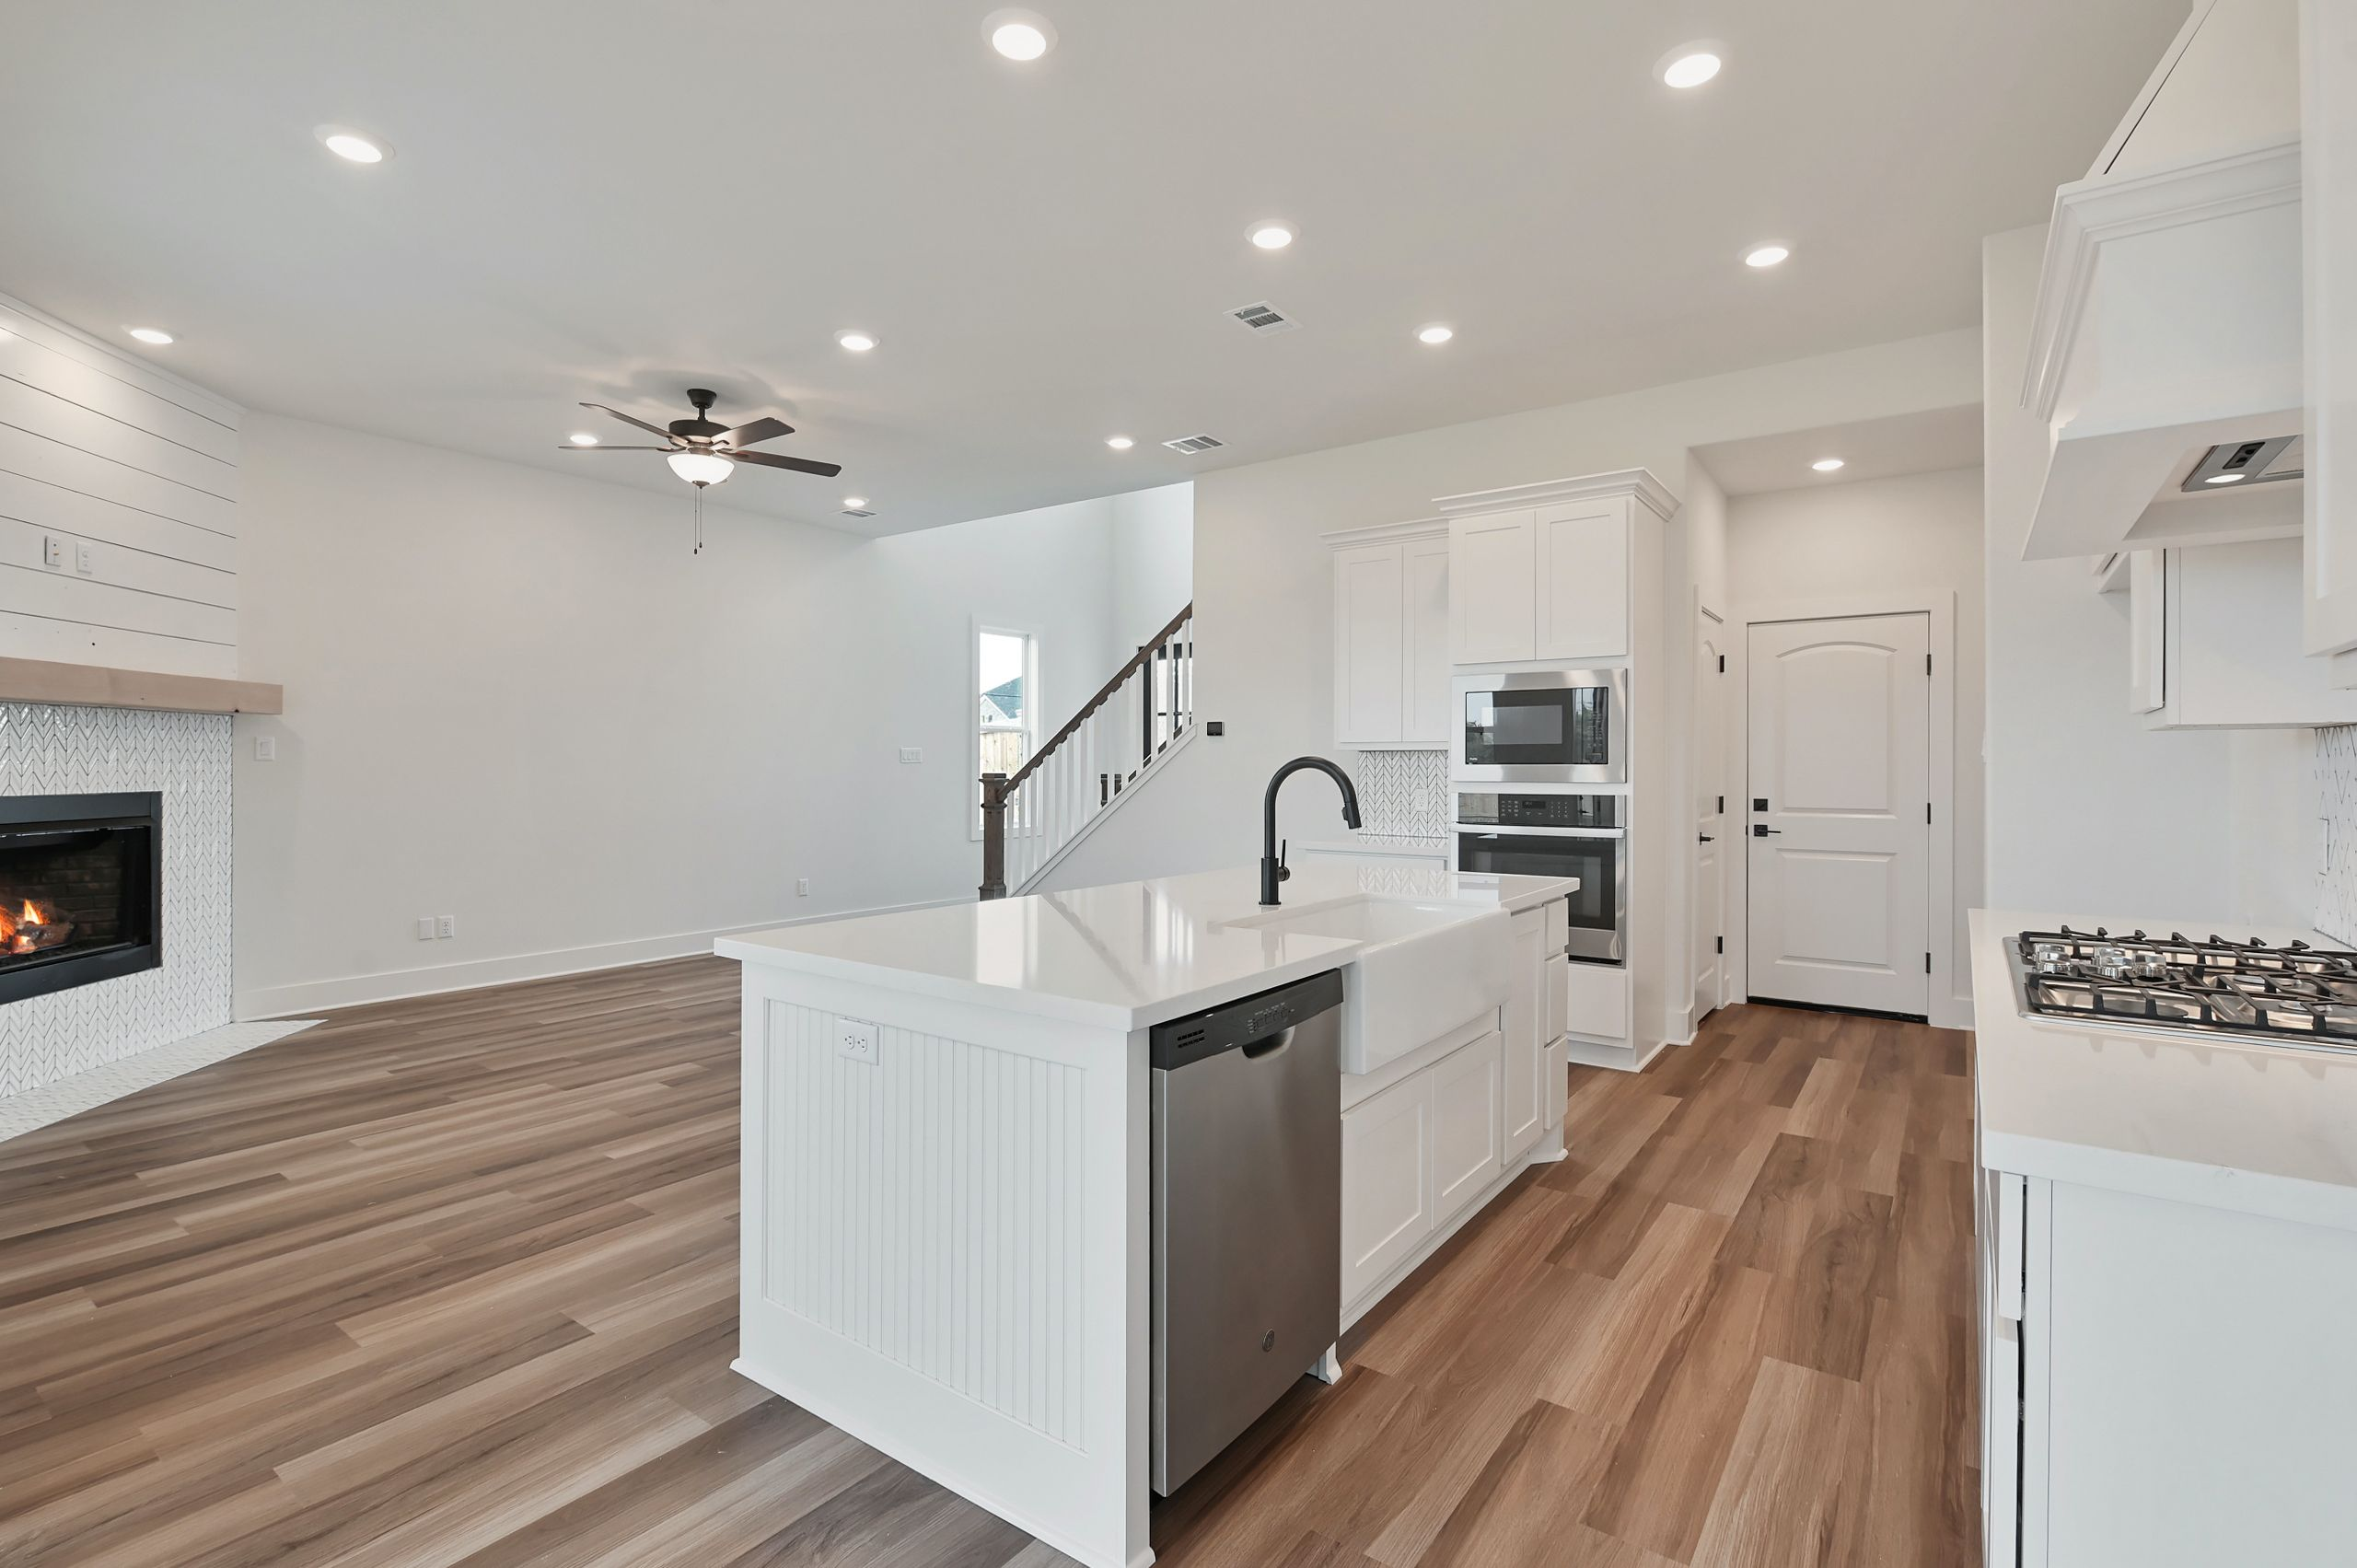 Kitchen featured in the Darwood By Blackstone Homes in Bryan-College Station, TX